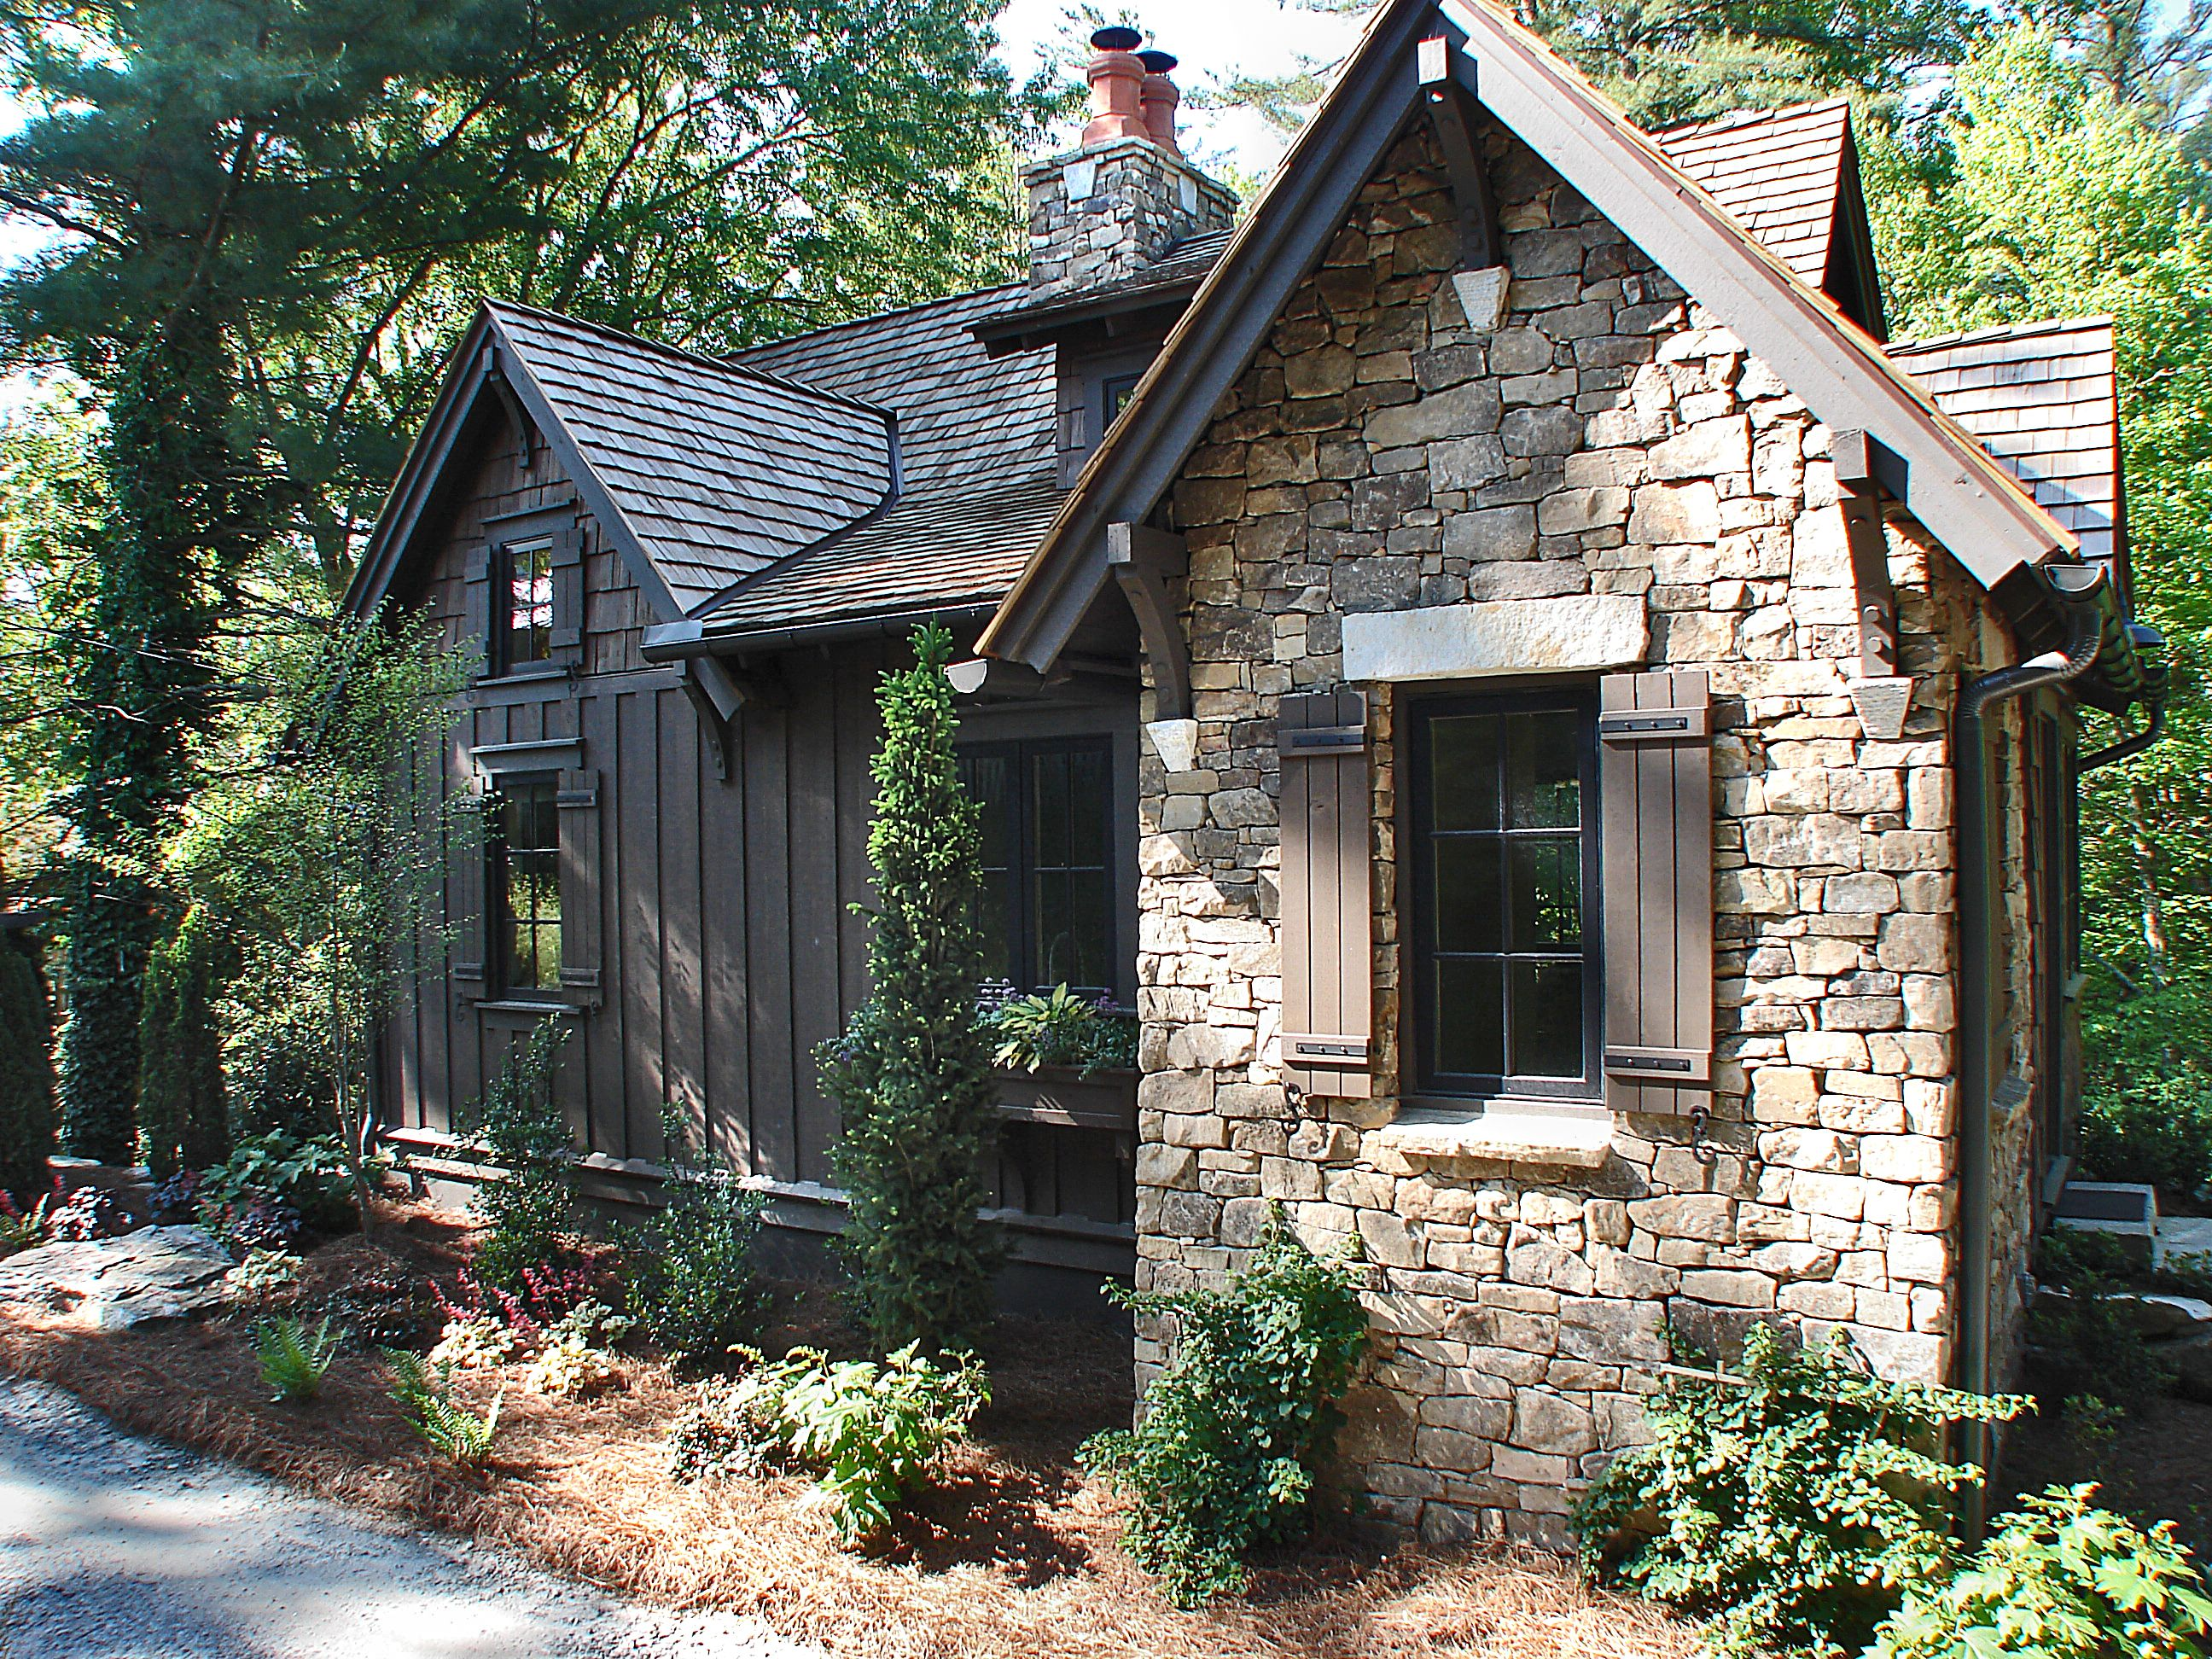 north rental area local creek nc mountains img have asheville cabin burnsville we plan your carolina the expertise to help you trip on front cabins